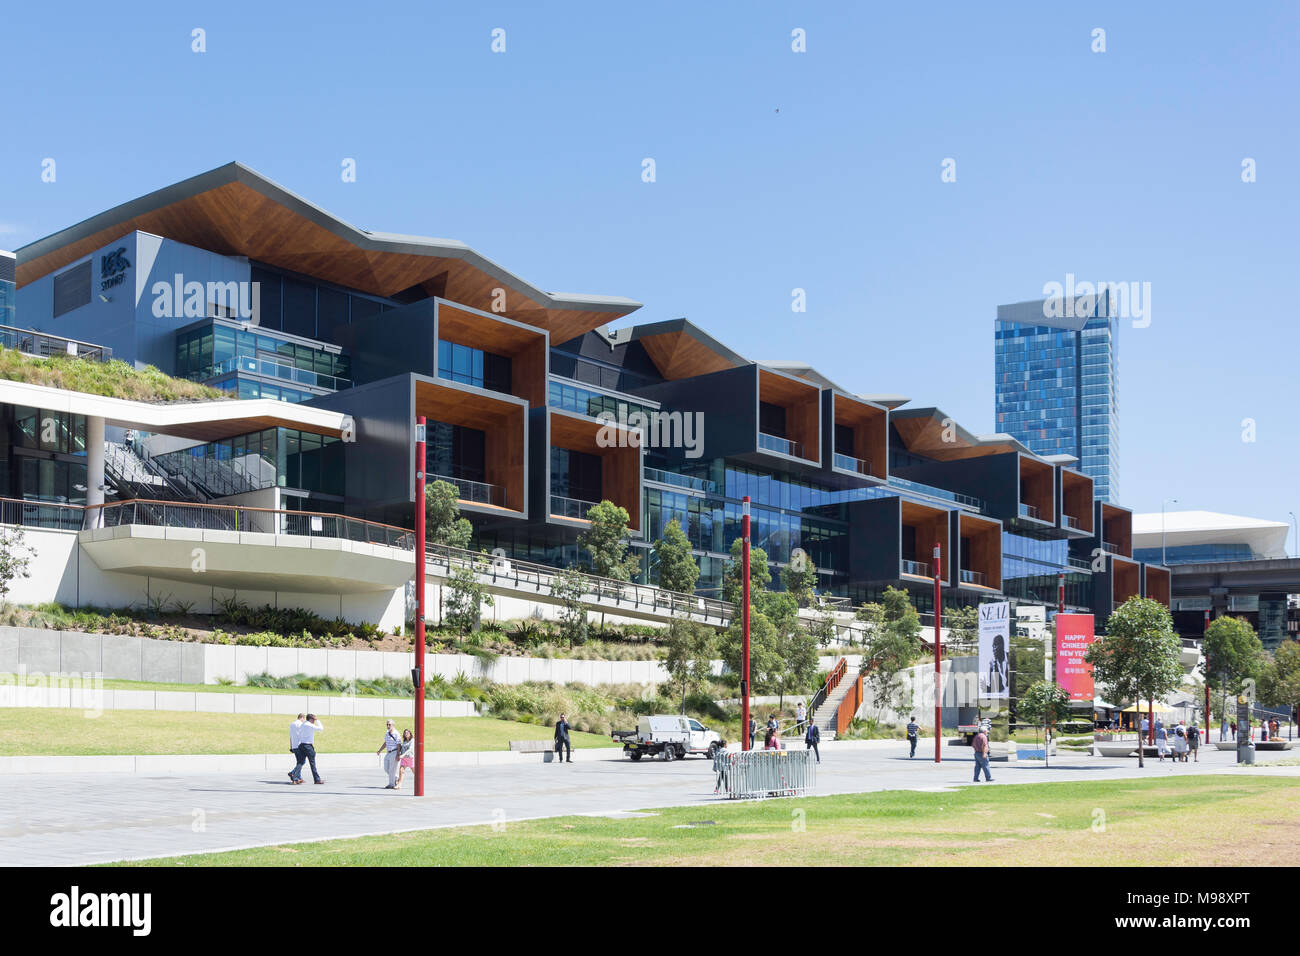 International Convention Centre Sydney (ICC Sydney), Darling Drive, Darling Harbour, Sydney, New South Wales, Australia - Stock Image